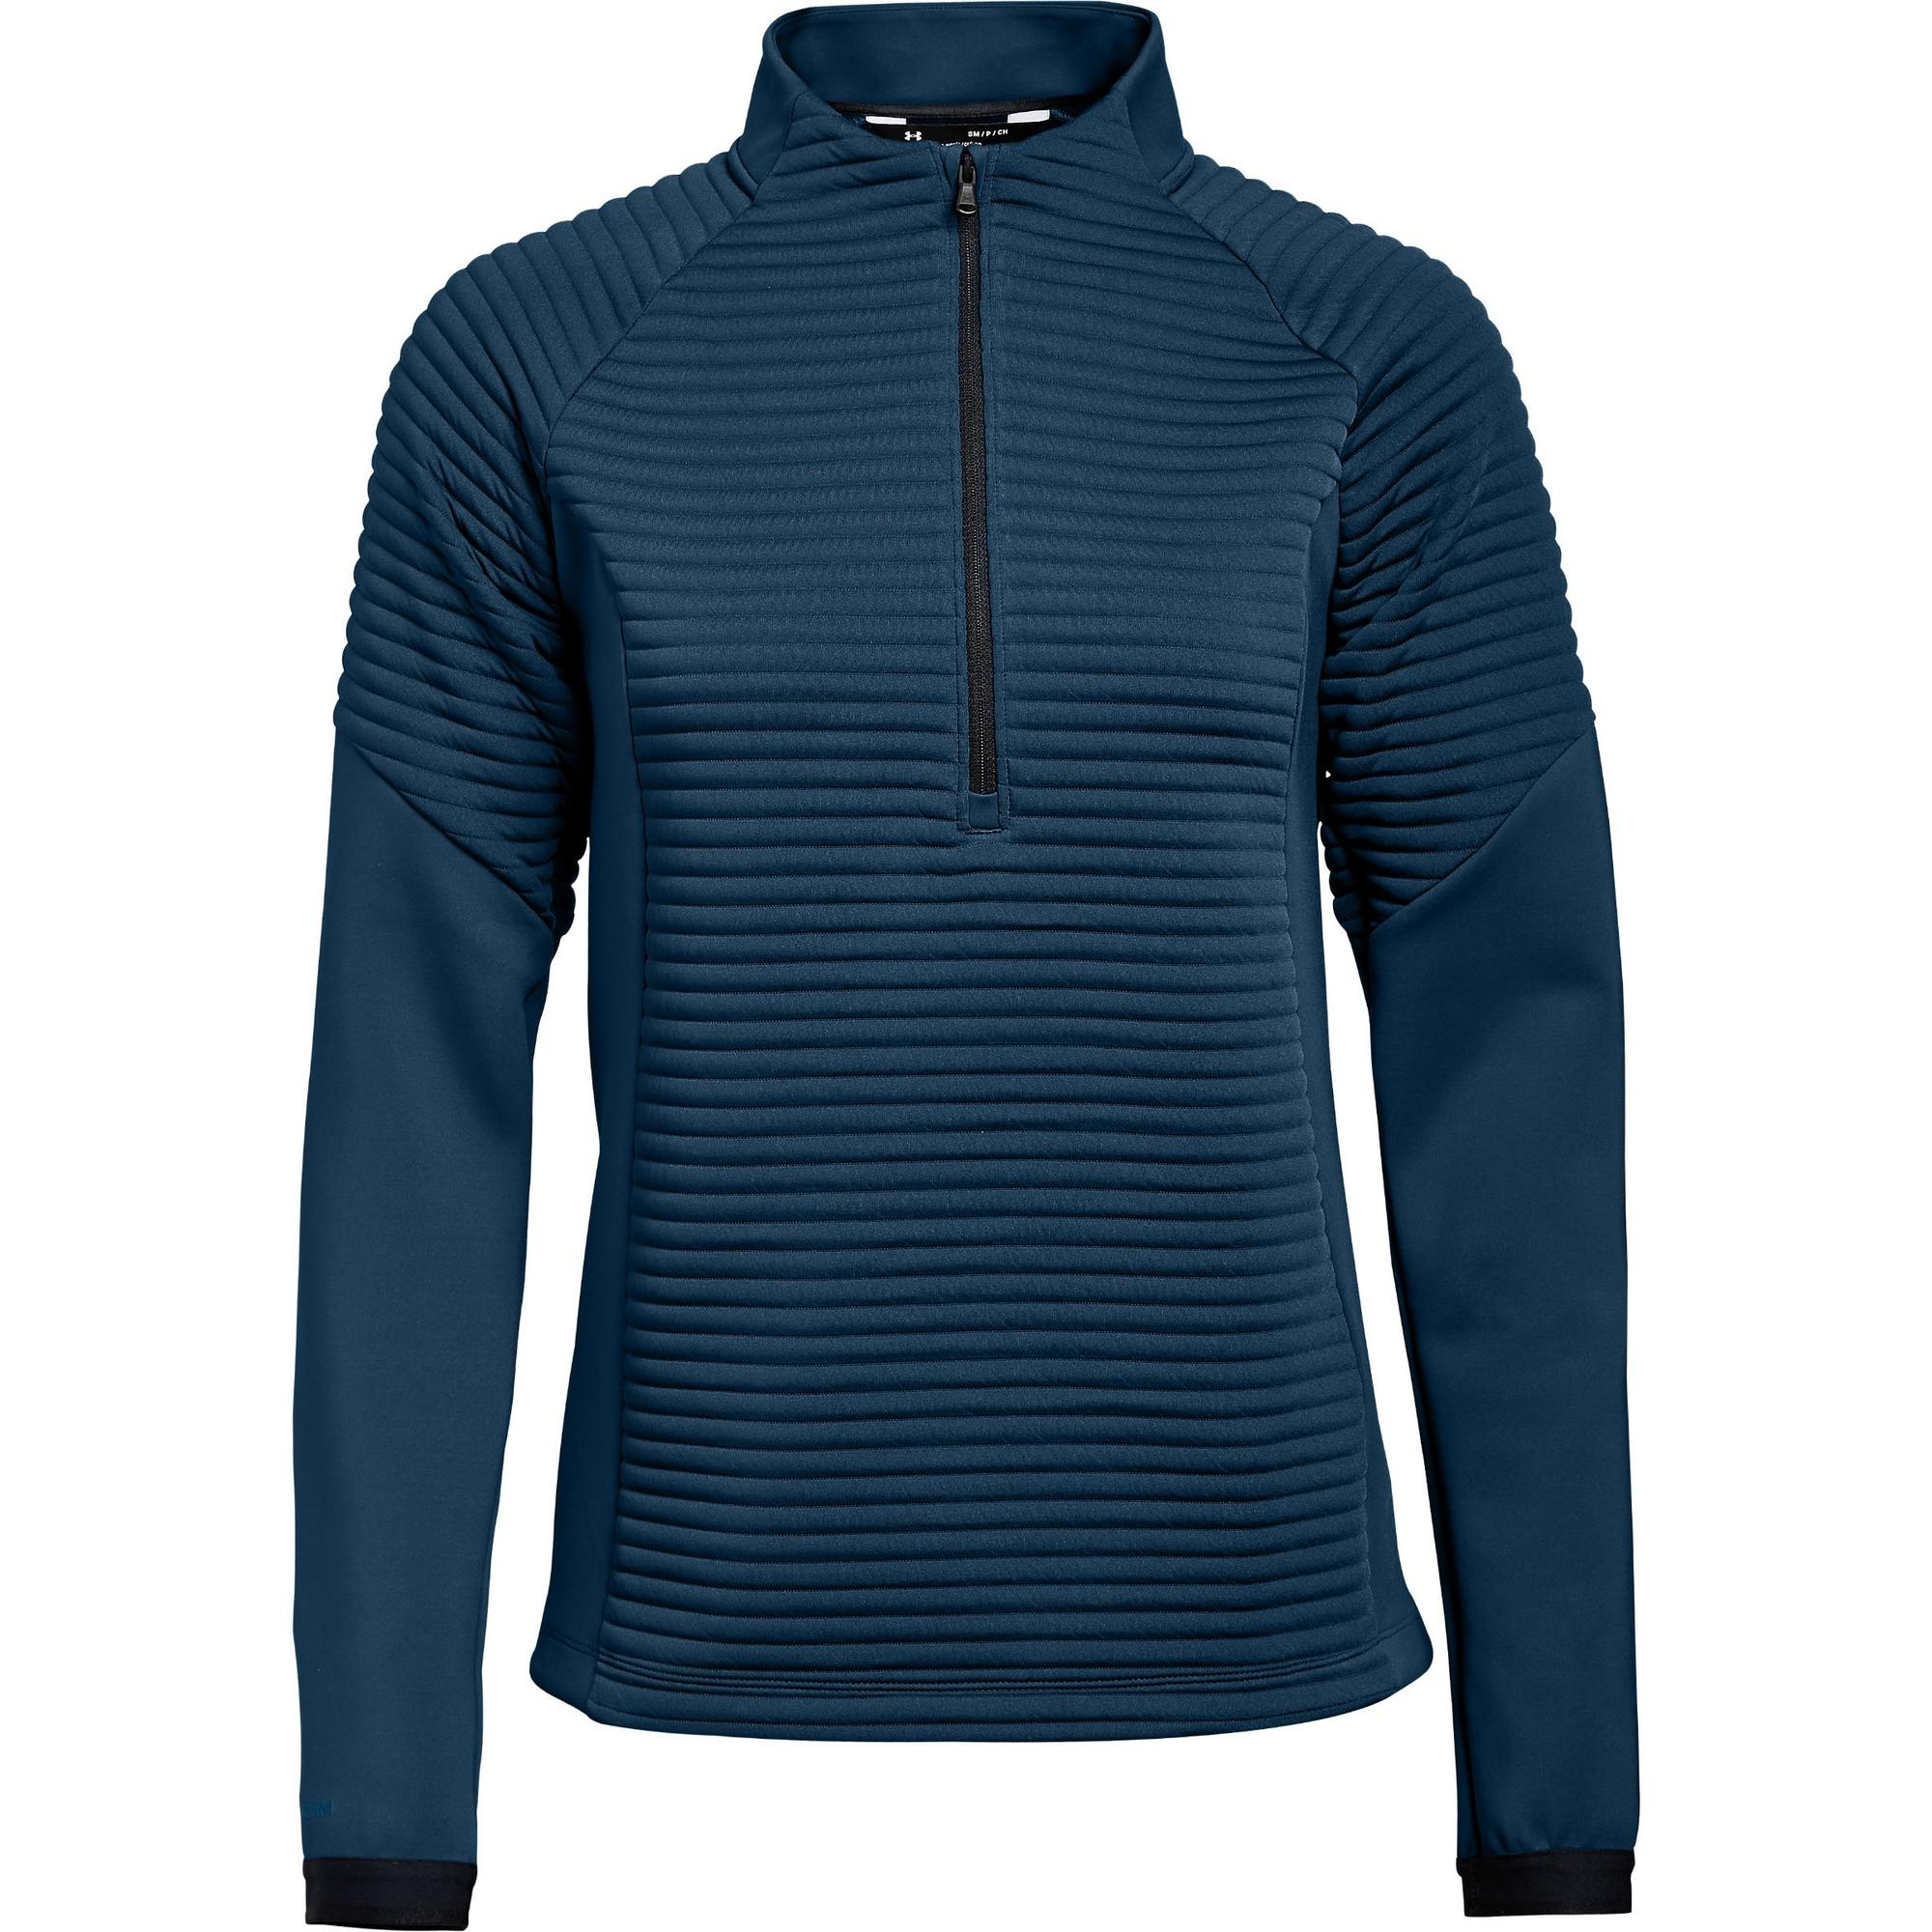 Women's Storm Daytona 1/2 Zip Long Sleeve Top